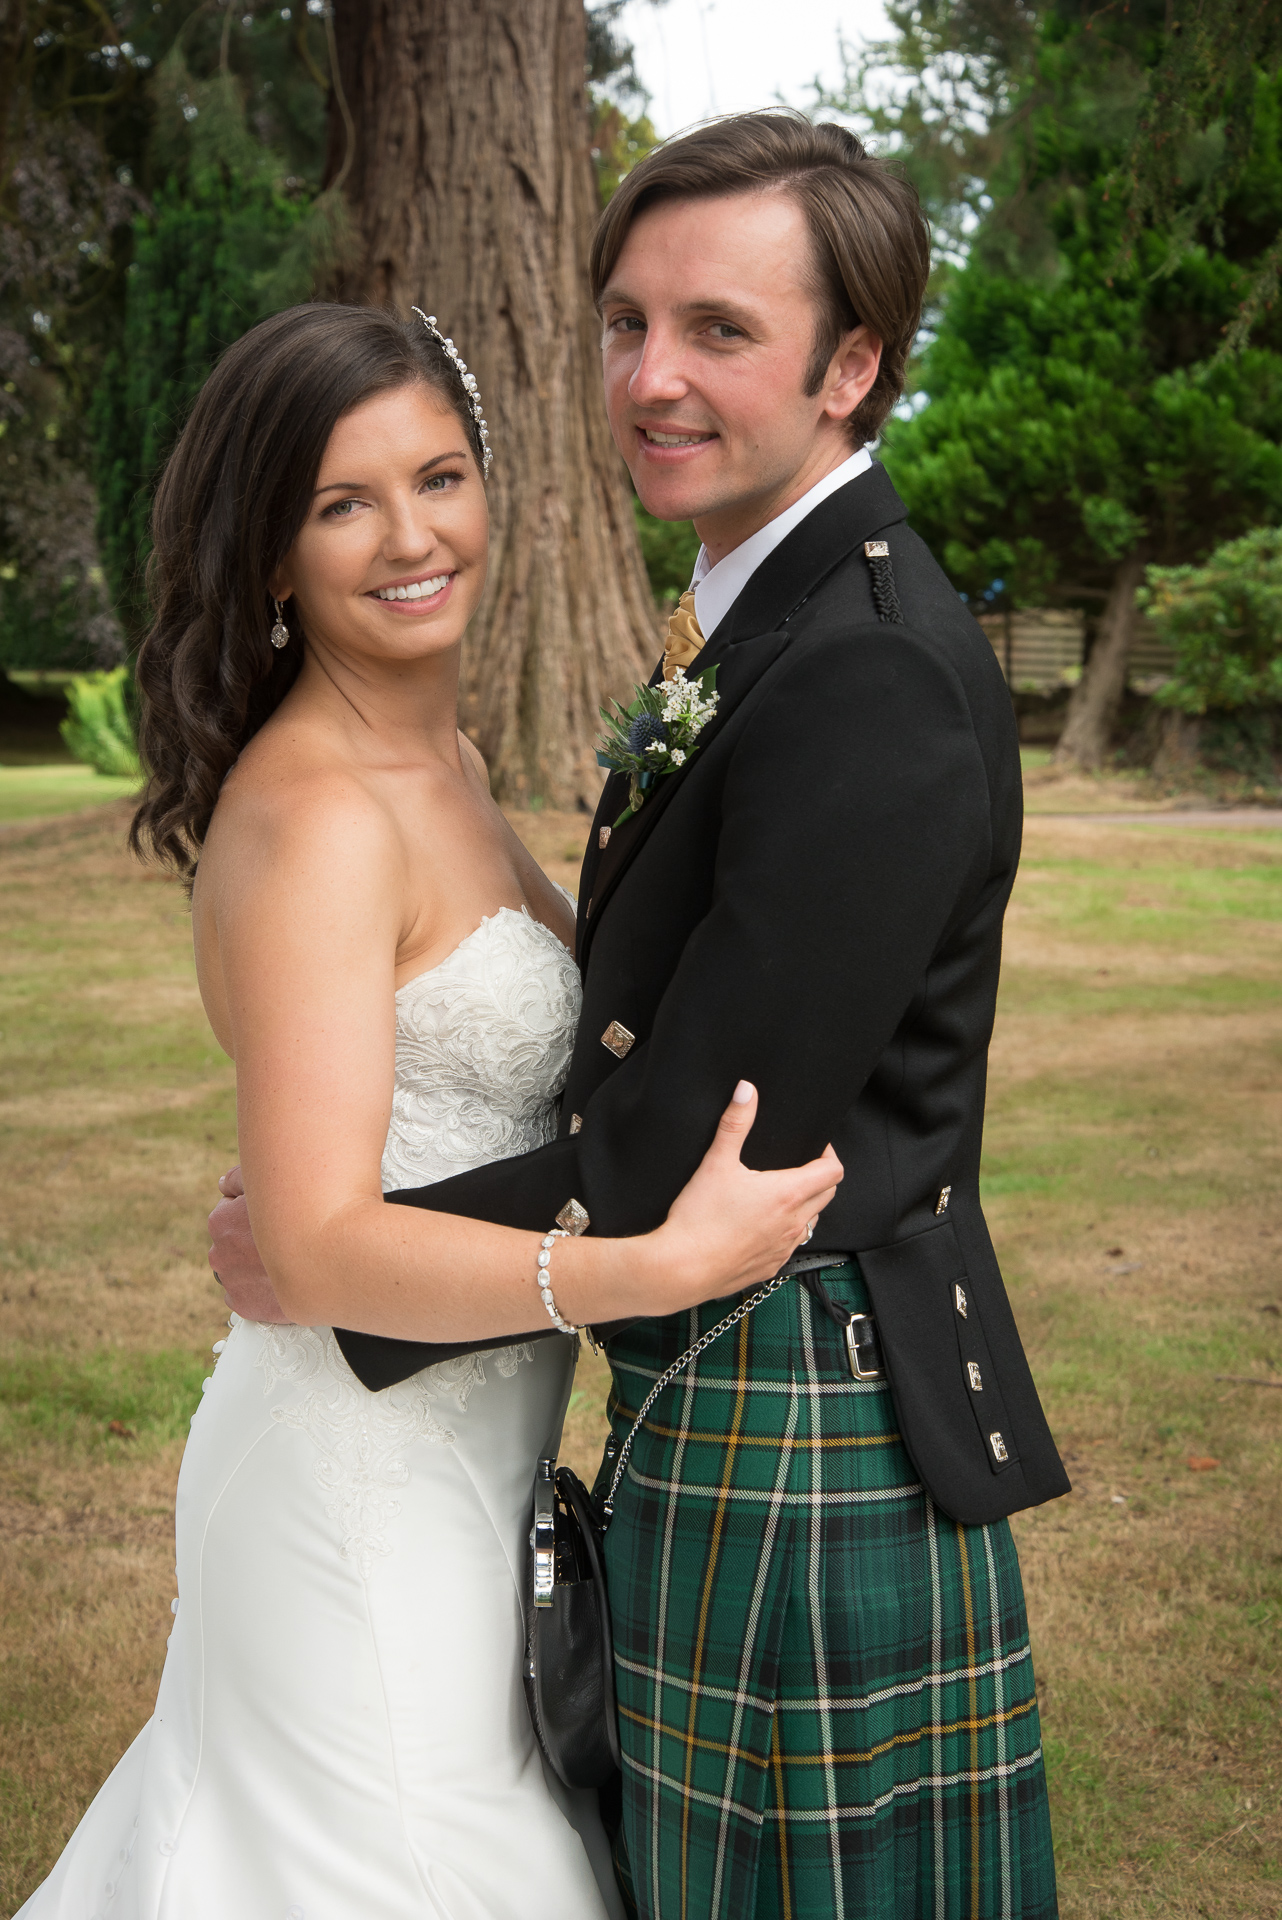 Paul and Meghan at Huntingtower Hotel Perth, the Bride and Bridesmaids 6